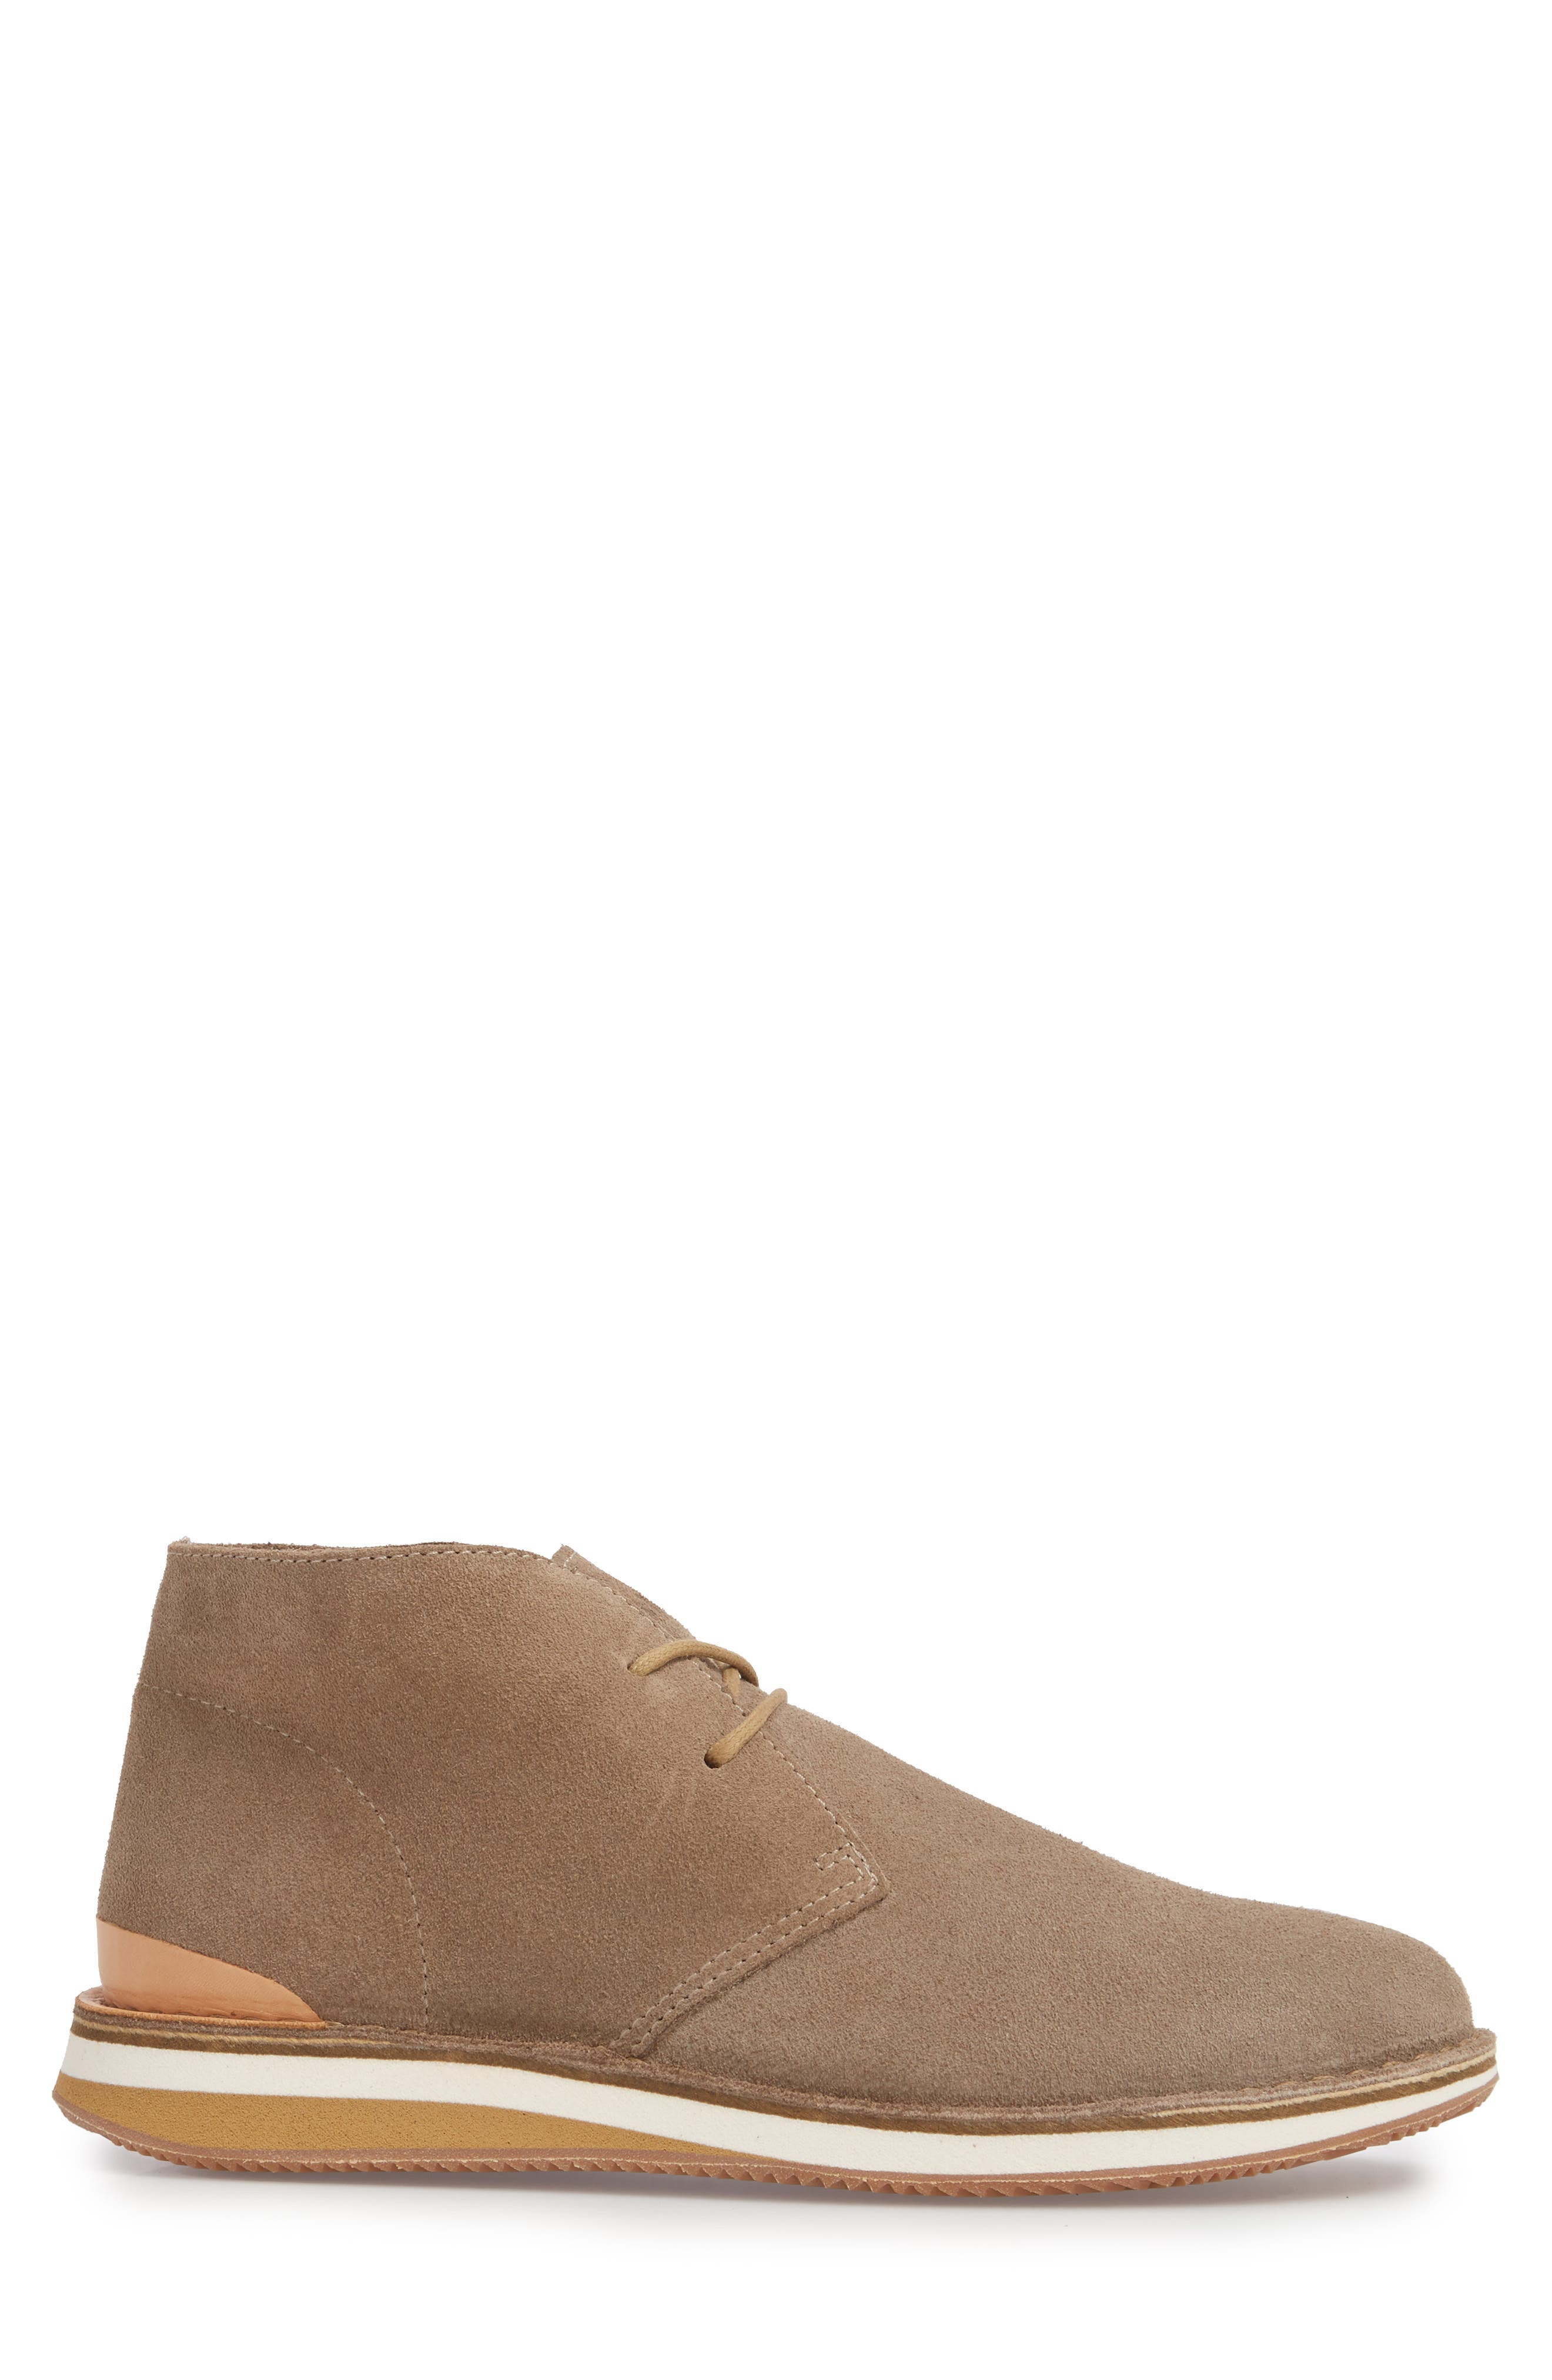 Hirsh Chukka Boot,                             Alternate thumbnail 3, color,                             271